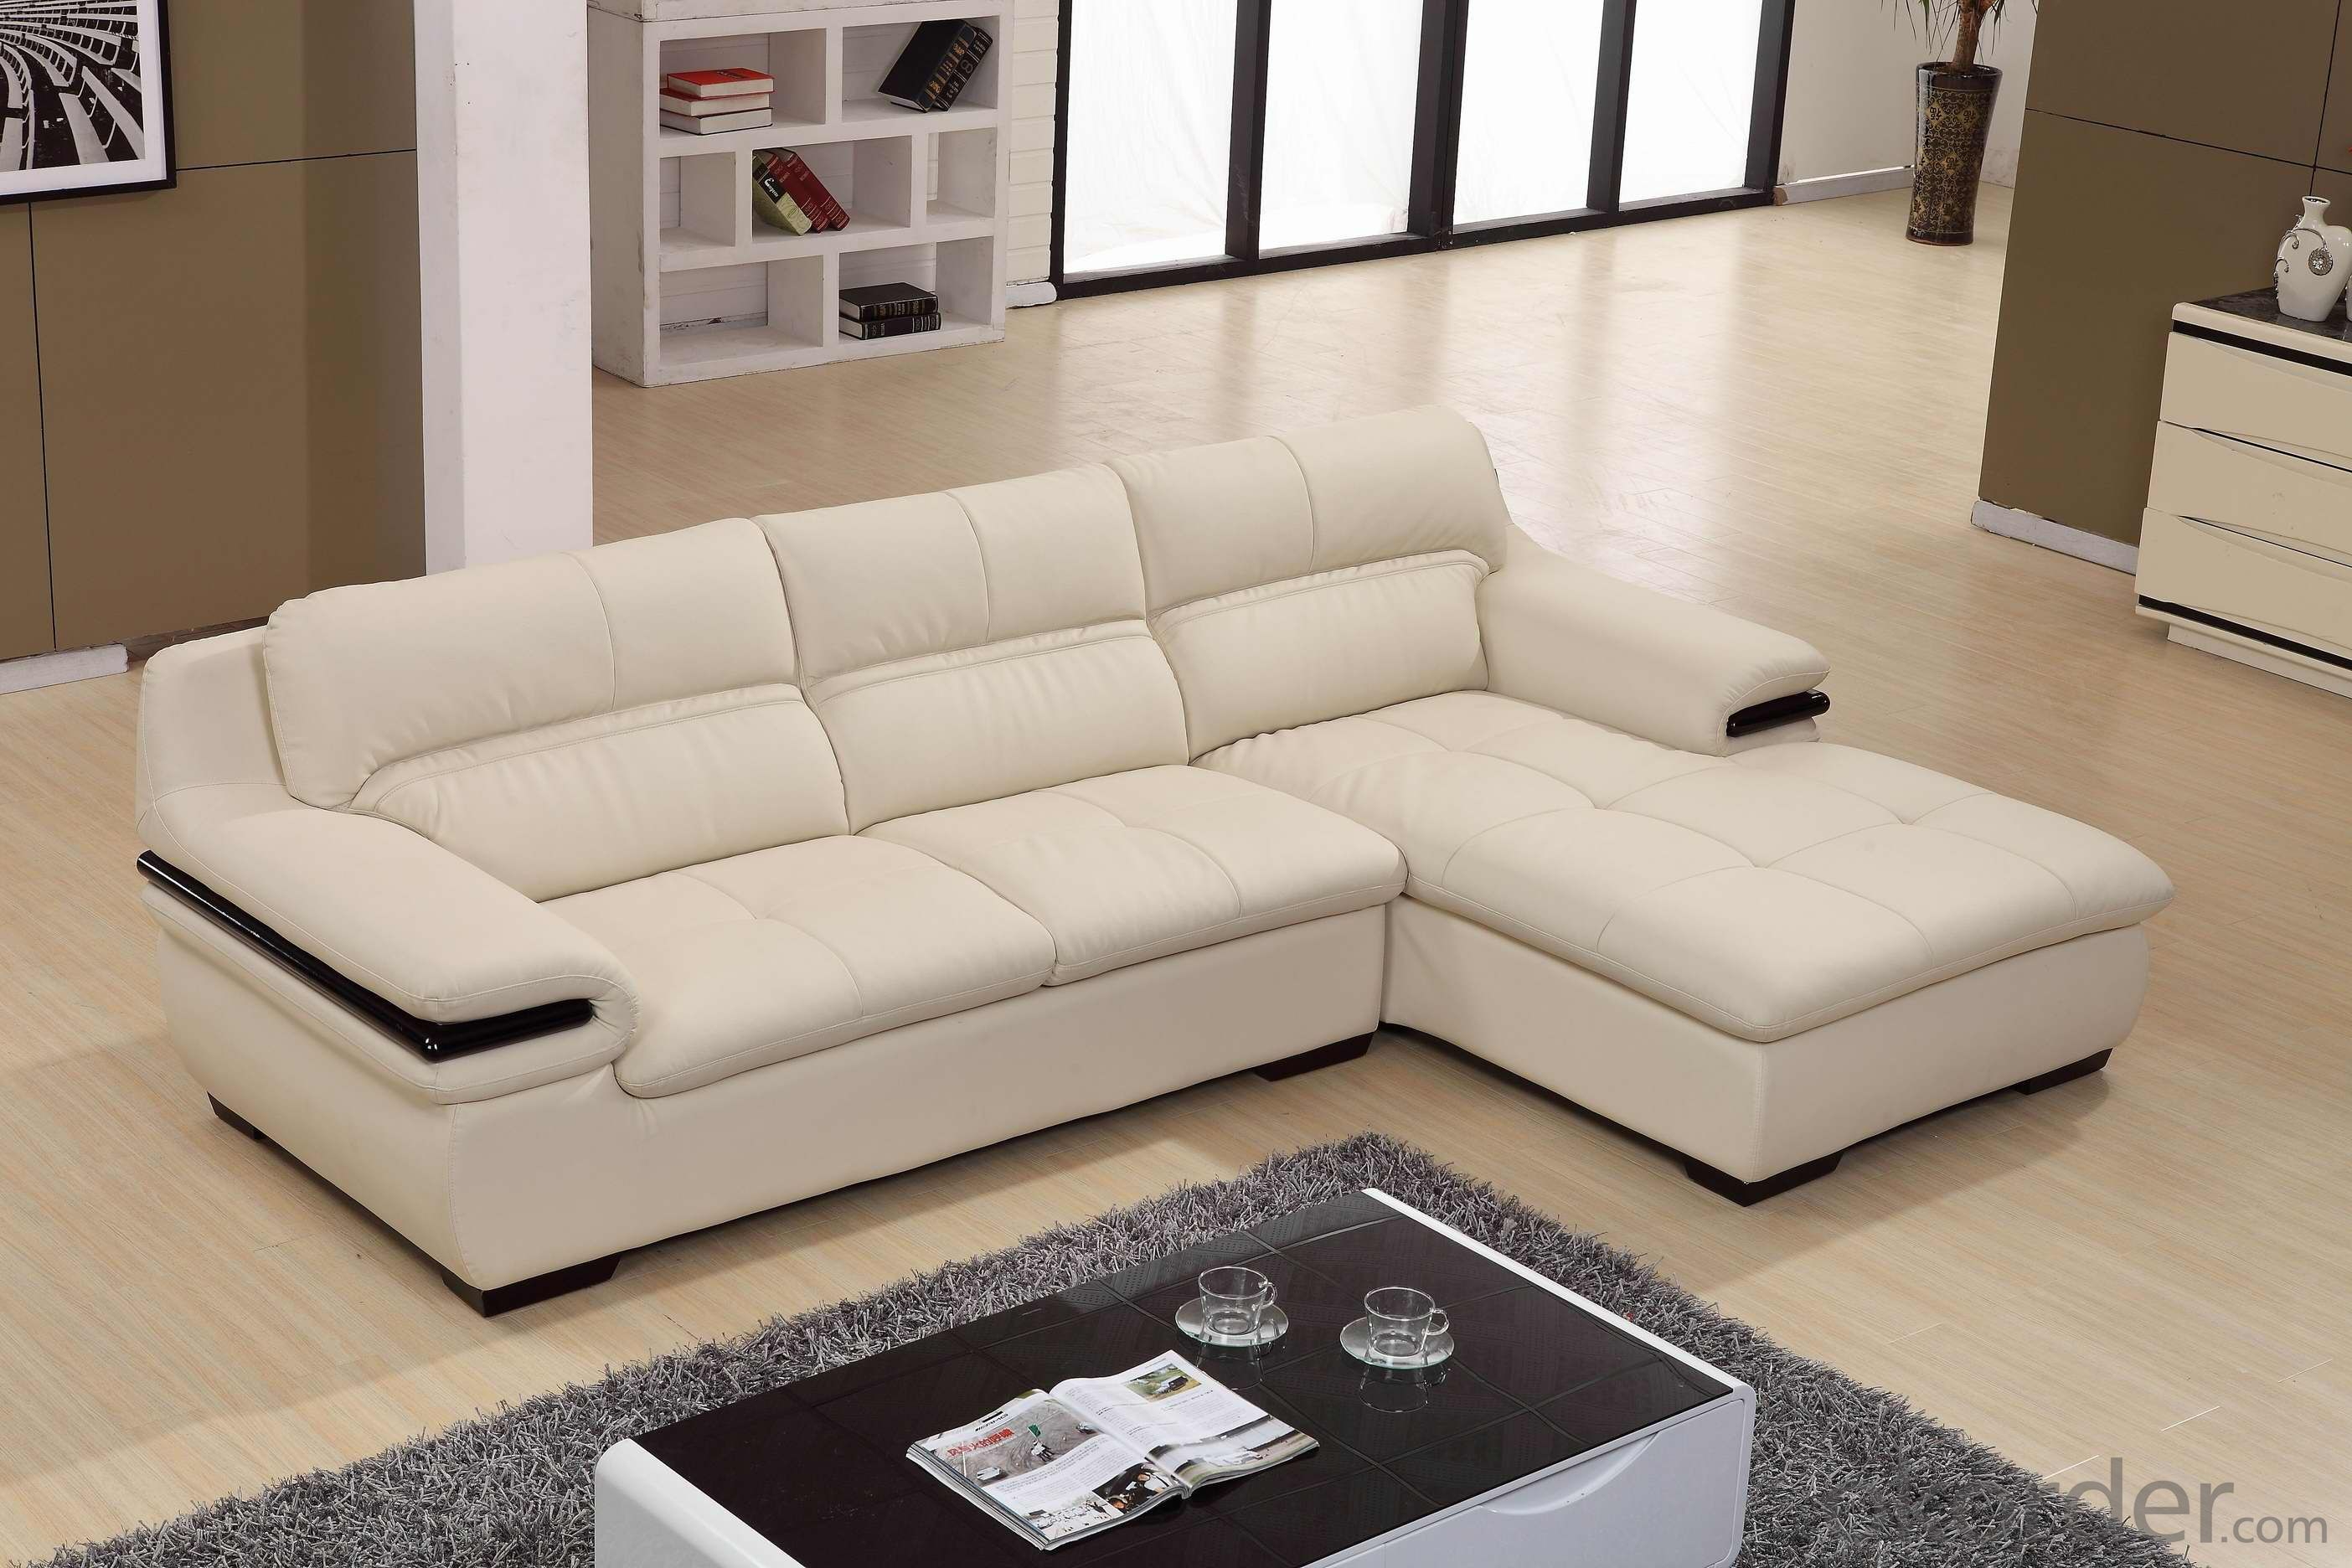 CNBM US popular leather sofa set CMAX-05